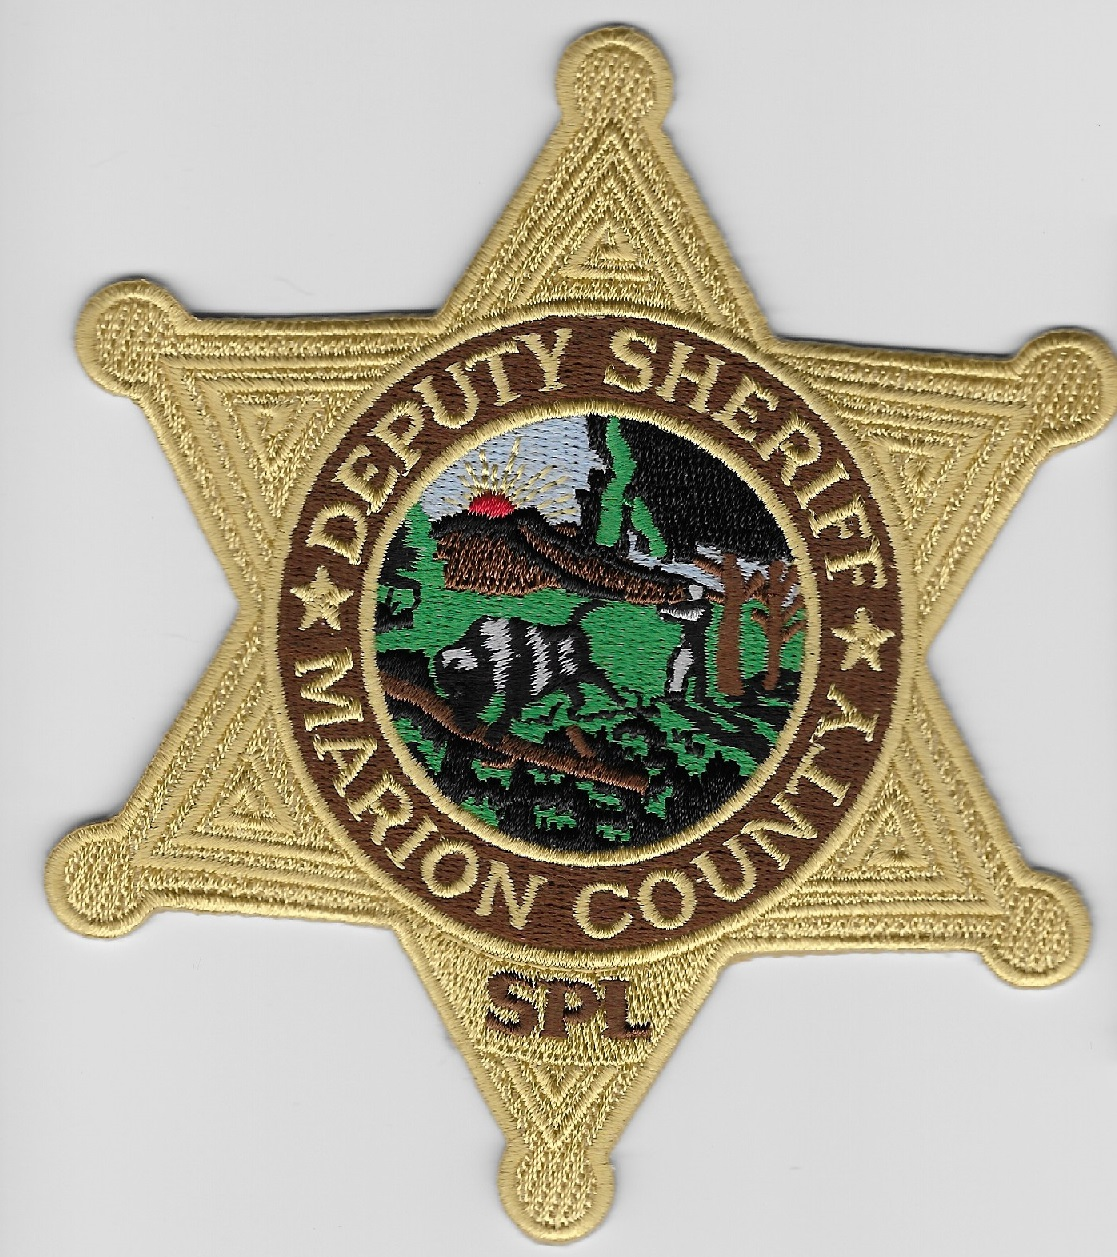 Marion County Sheriff IN